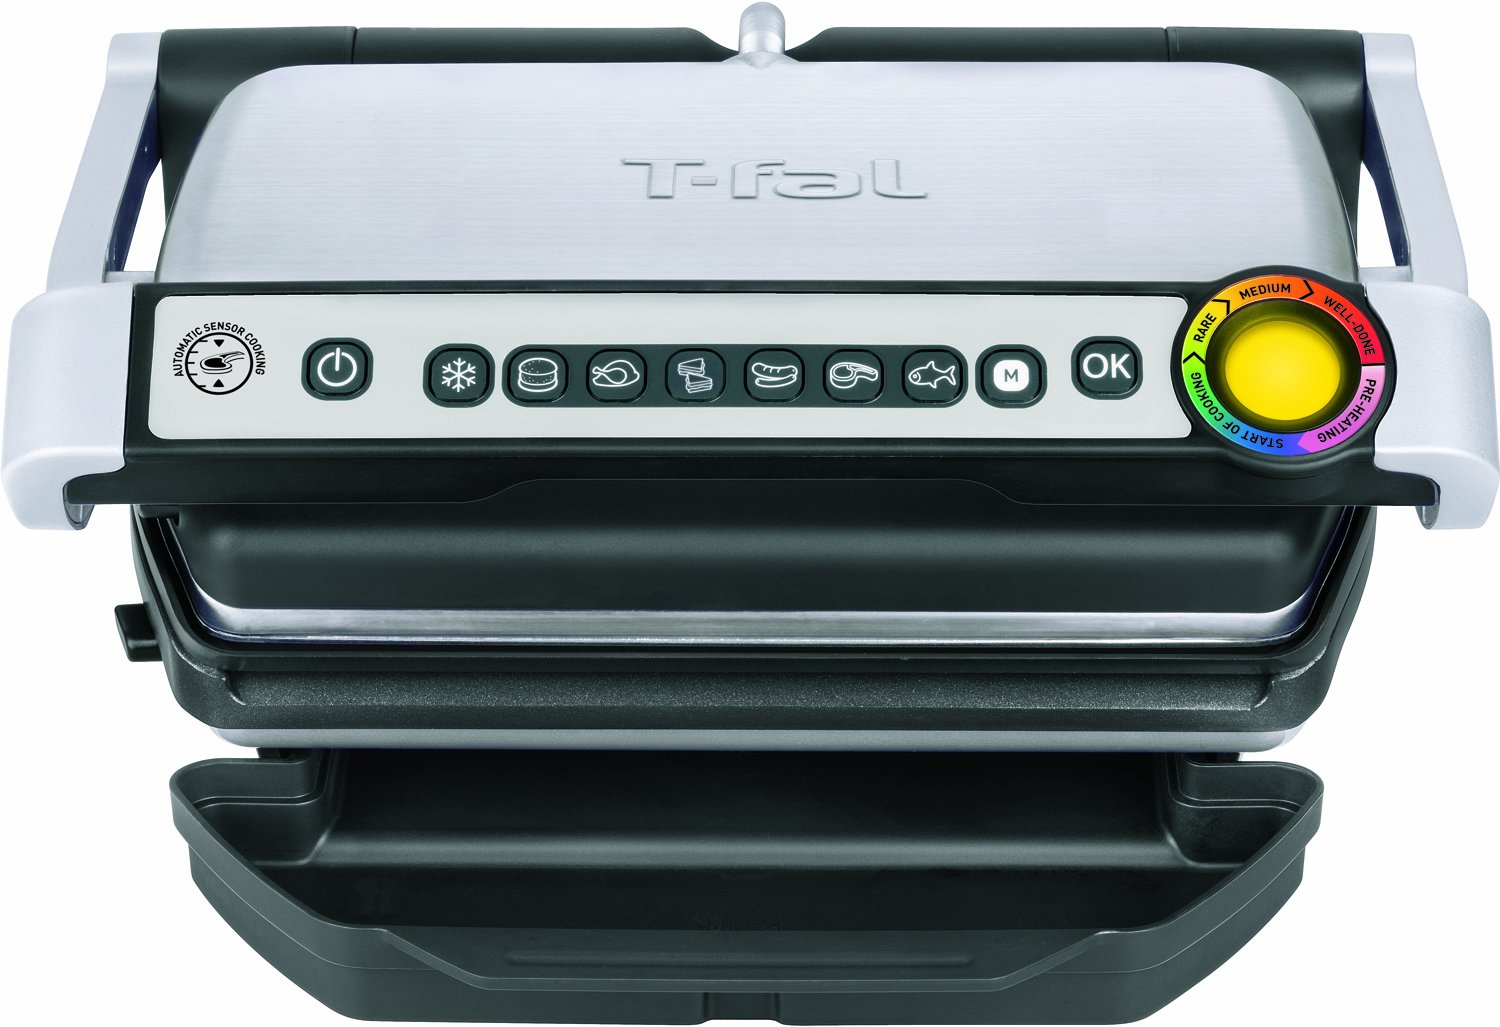 T-fal GC70 OptiGrill Electric Grill, Indoor Grill, Removable Nonstick Dishwasher Safe Plates, 4 Servings, Silver by T-fal